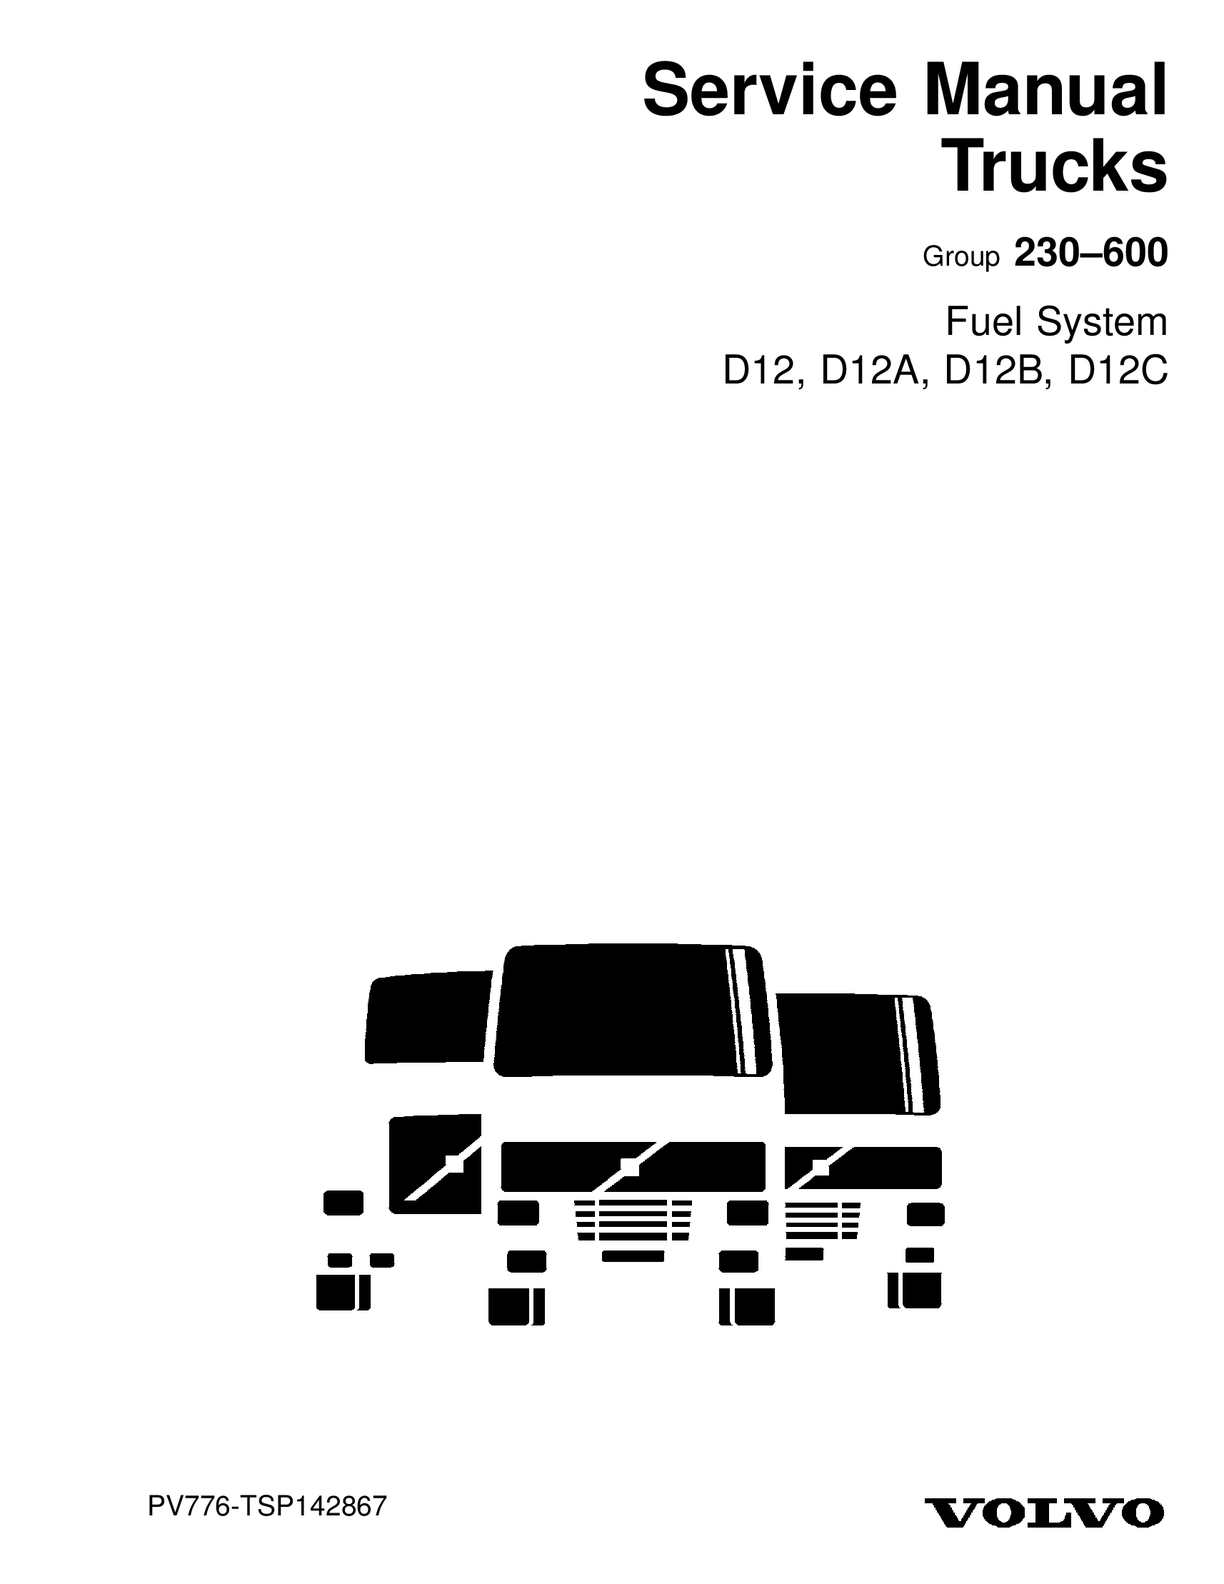 hight resolution of volvo fuel system d12 d12a d12b d12c